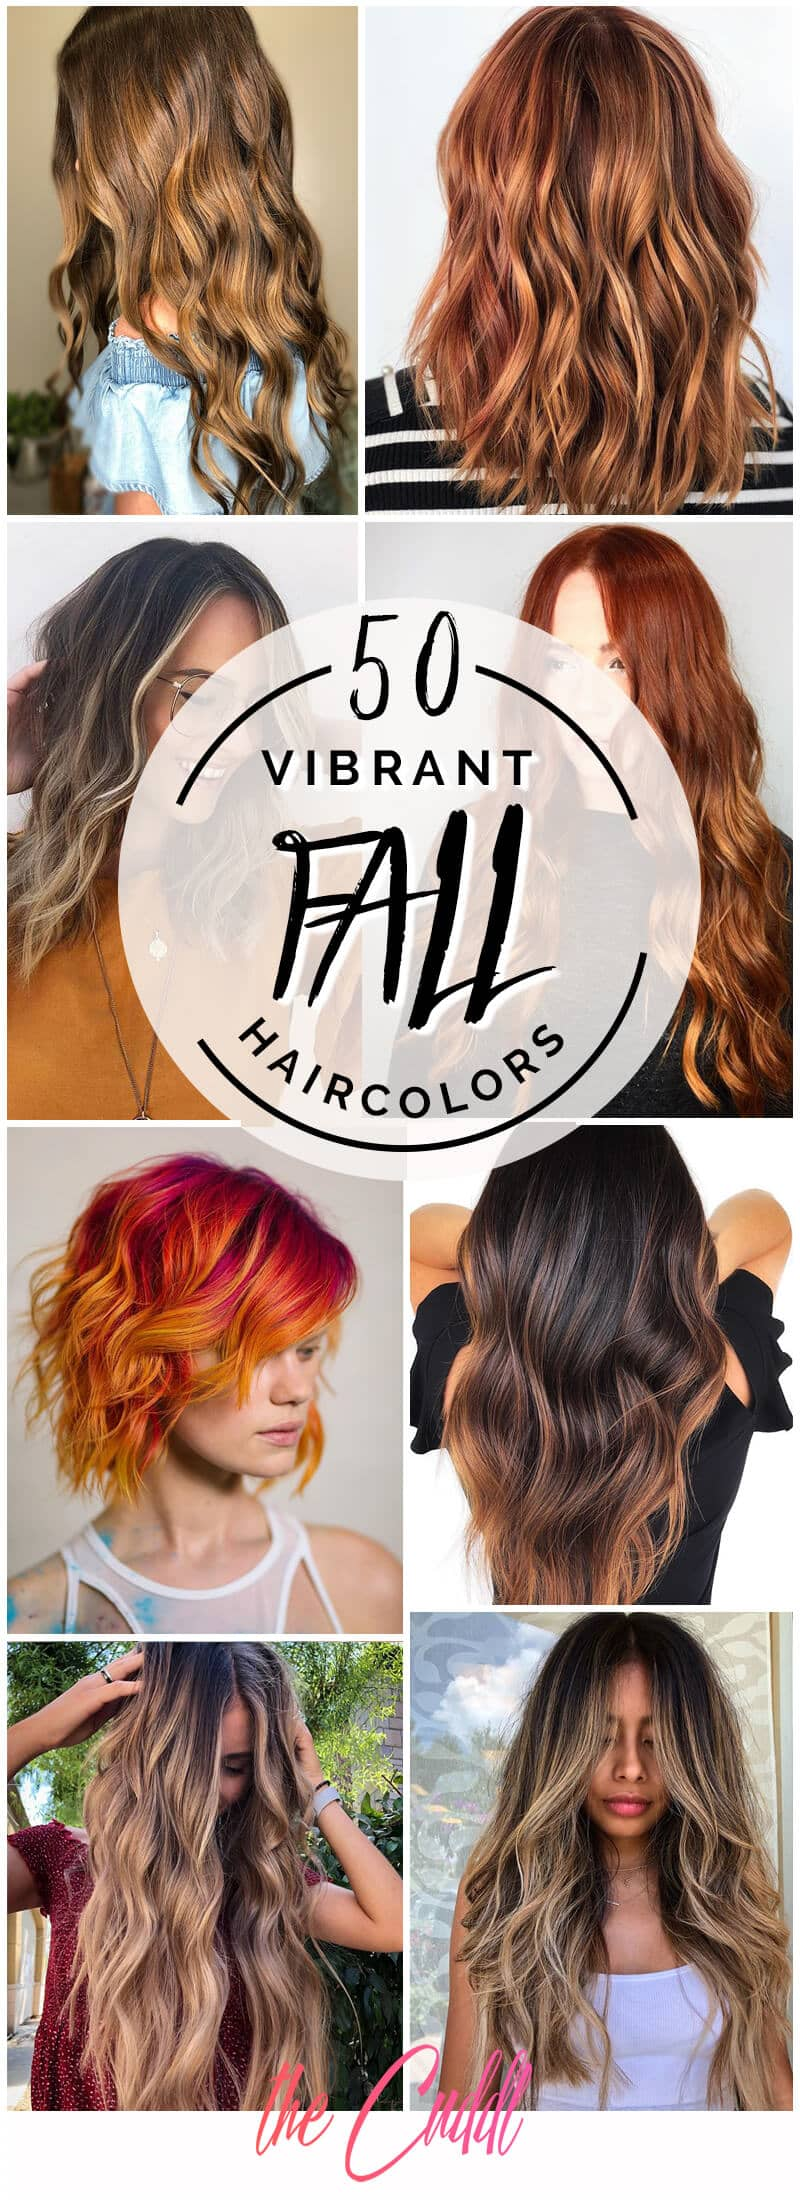 50 Vibrant Fall Hair Color Ideas To Accent Your New Hairstyle In 2020